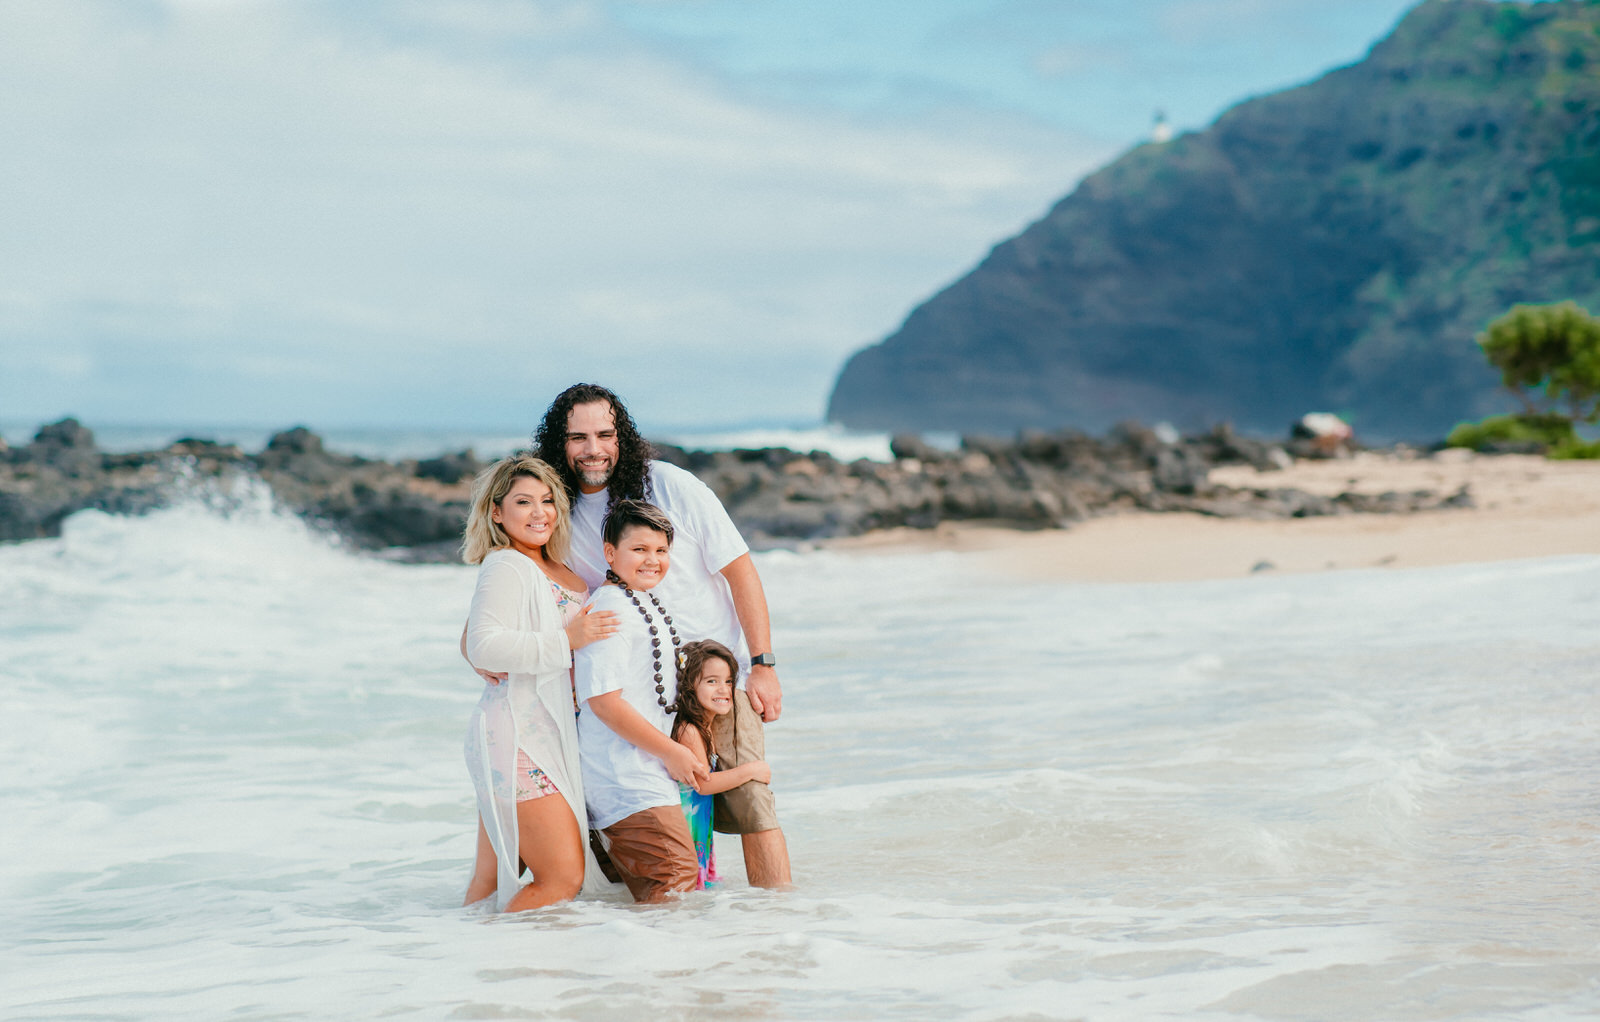 Lopez Family Vacation on Waimanalo Beach - Hawaii Family Photographer - Ketino Photography1-3.jpg